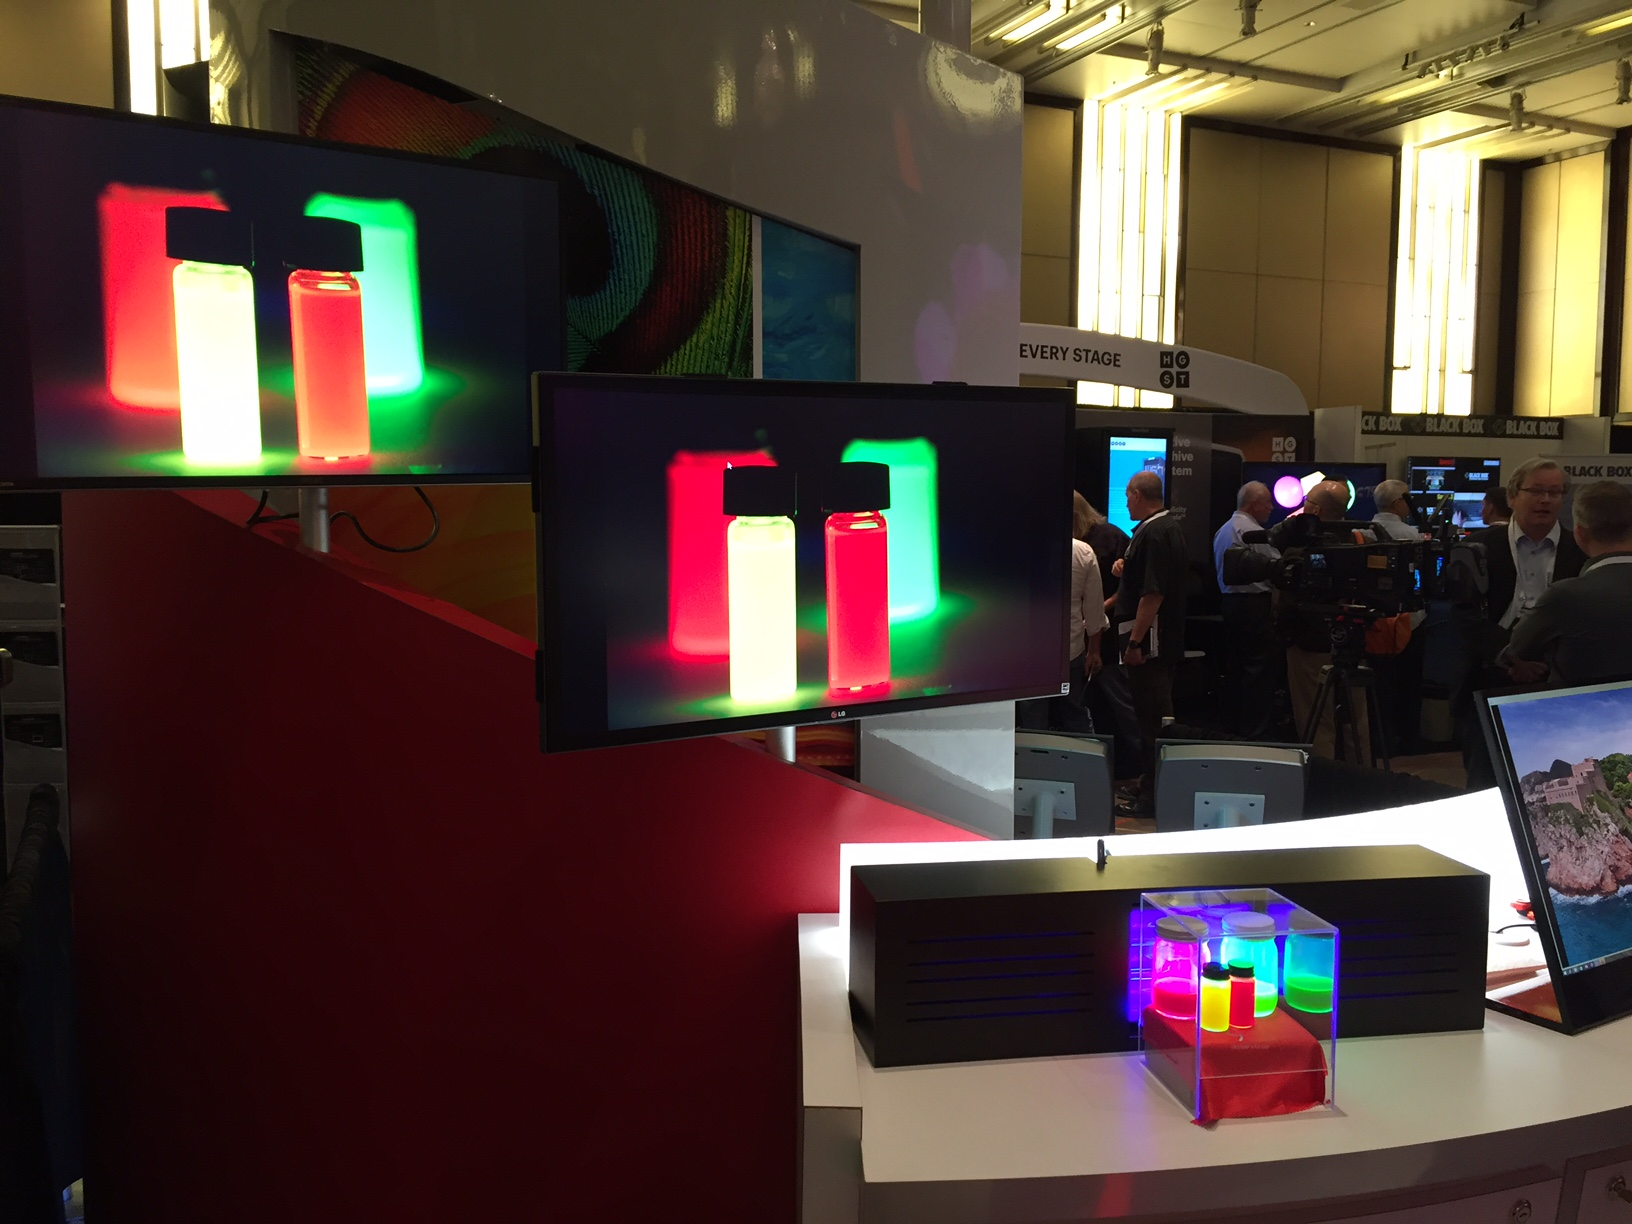 Rec.2020 Quantum Dots on display at SMPTE on a rec.2020 display! In the above demo, 3M is showing red and green Quantum Dots with rec.2020 wavelengths (clear box at lower right) next to an accurately reproduced image of those same dots on the 93% rec.2020 display (above and left).